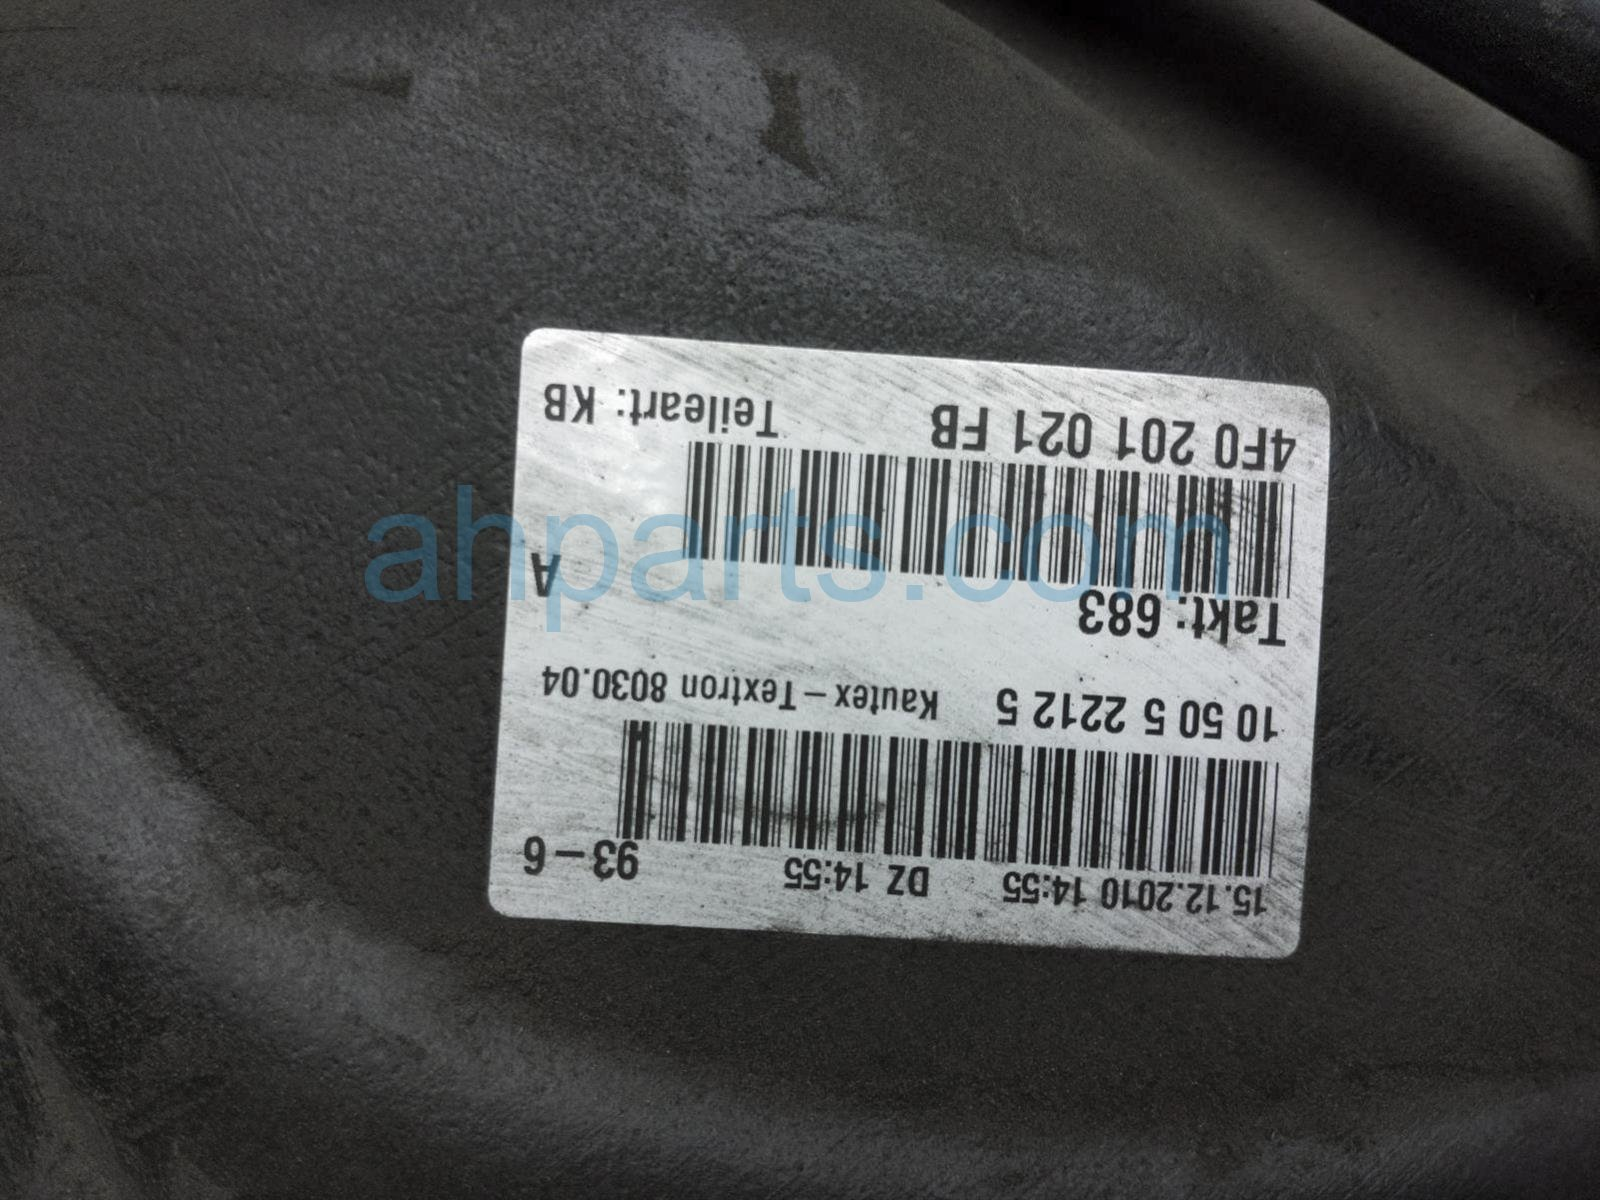 2011 Audi A6 Audi Gas / Fuel Tank 4F0 201 060 S Replacement